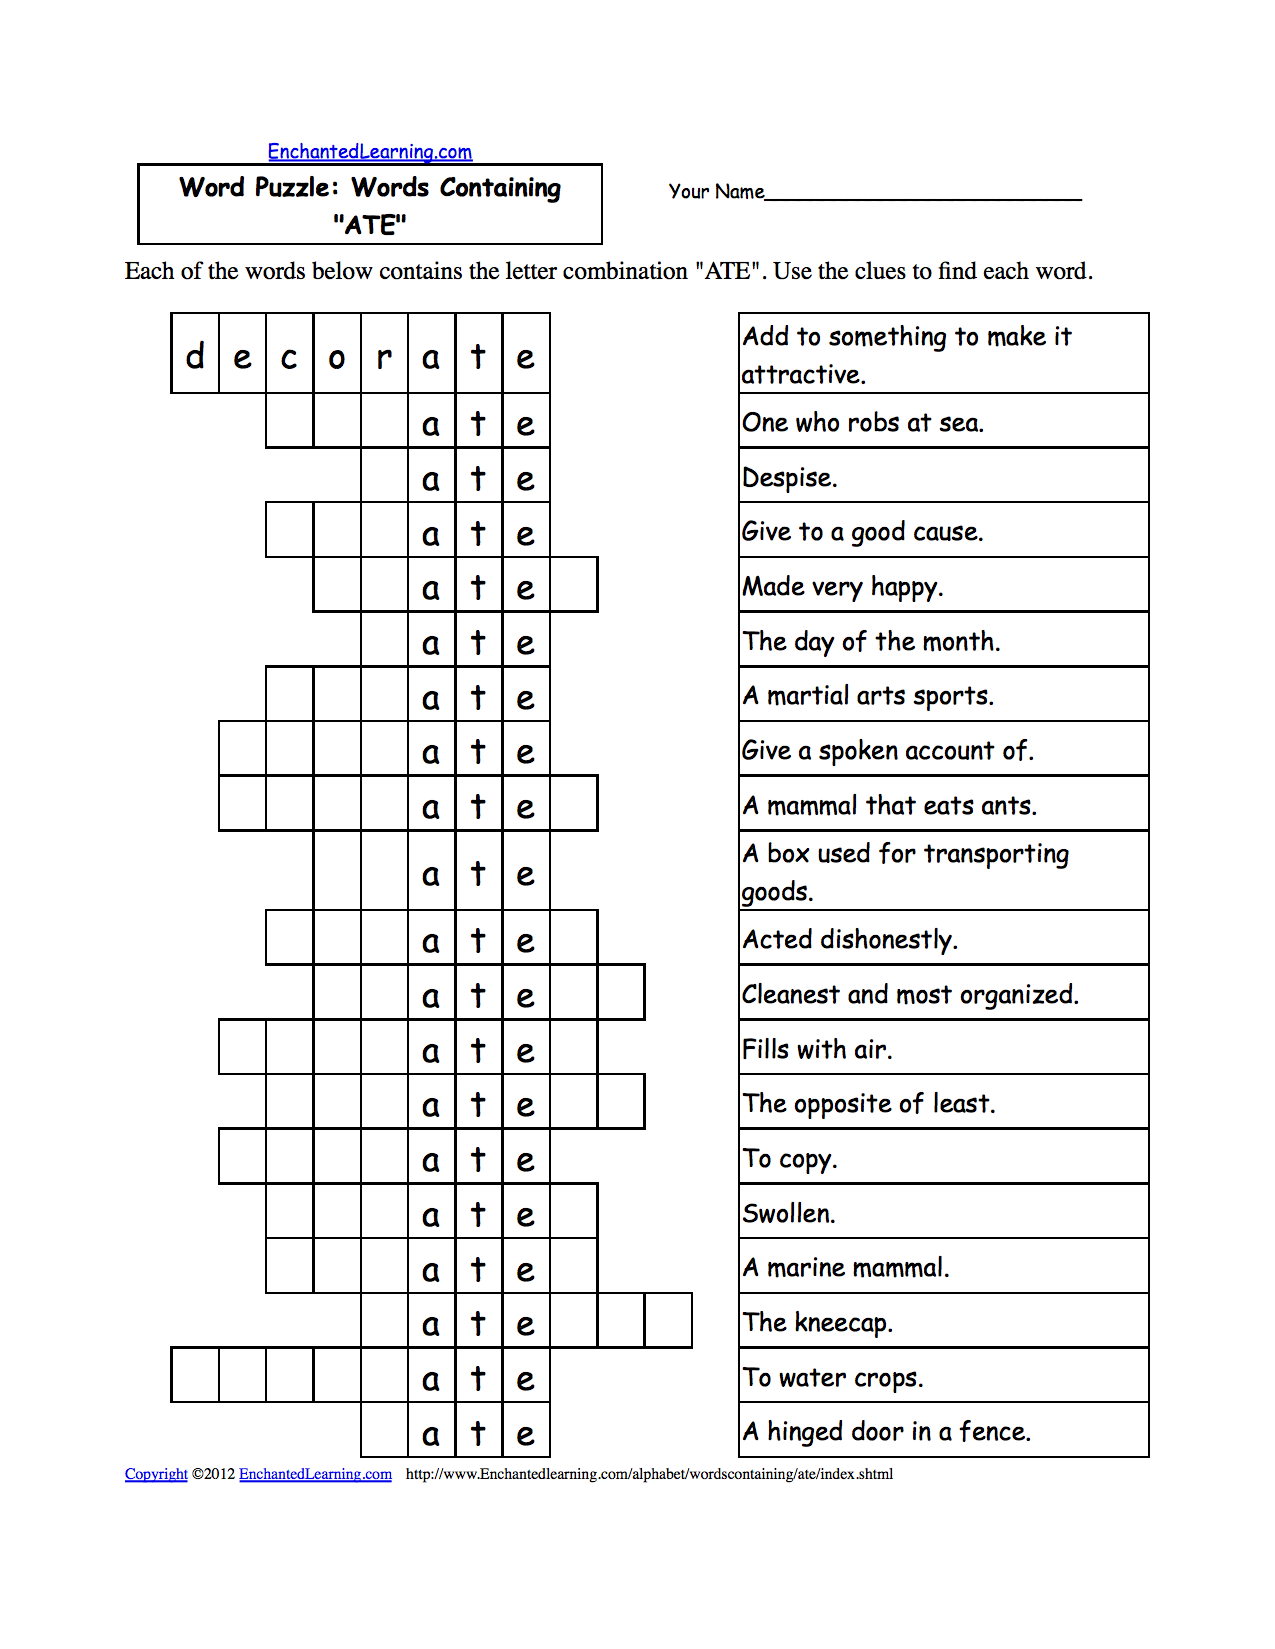 worksheet Combination Worksheet With Answers word puzzles words containing three letter combinations worksheets to print enchantedlearning com